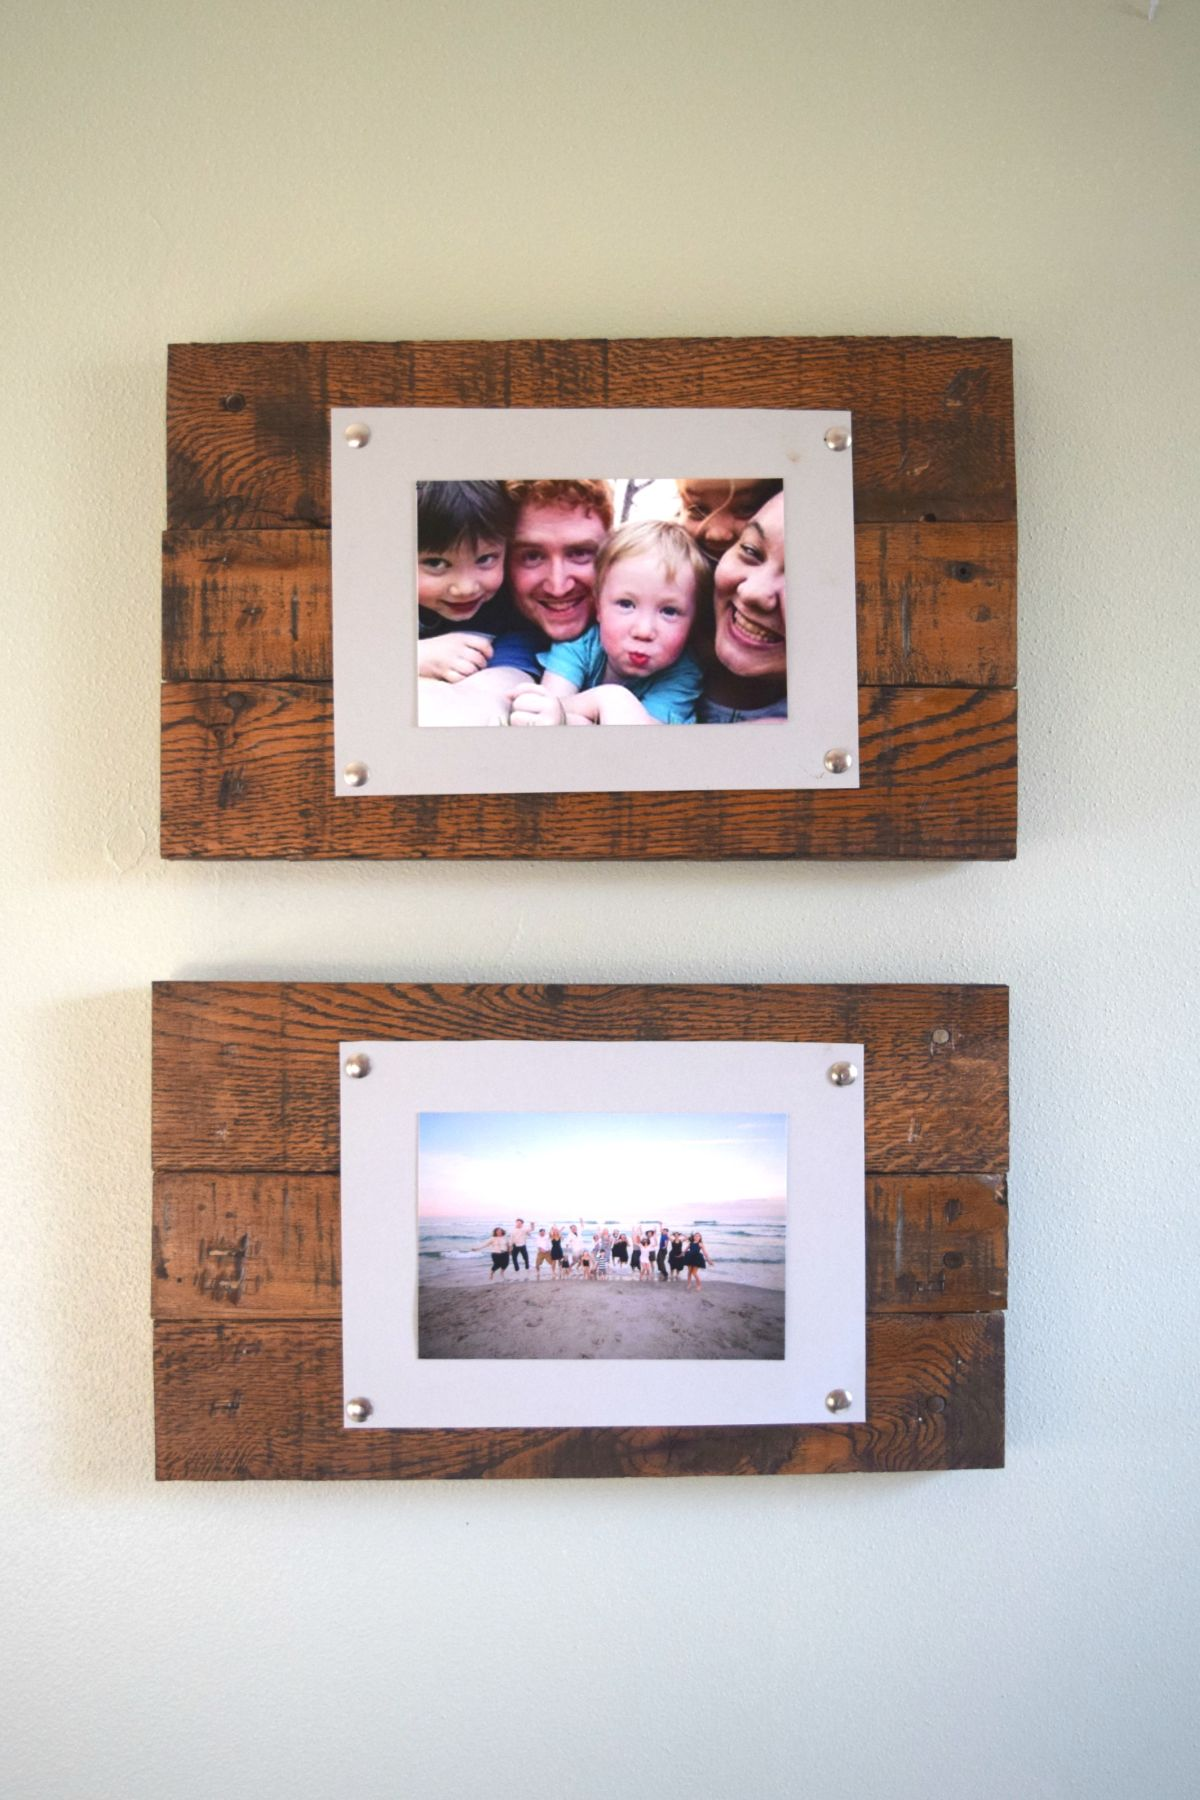 46 Awesome Diy Wood Projects For Absolute Beginners